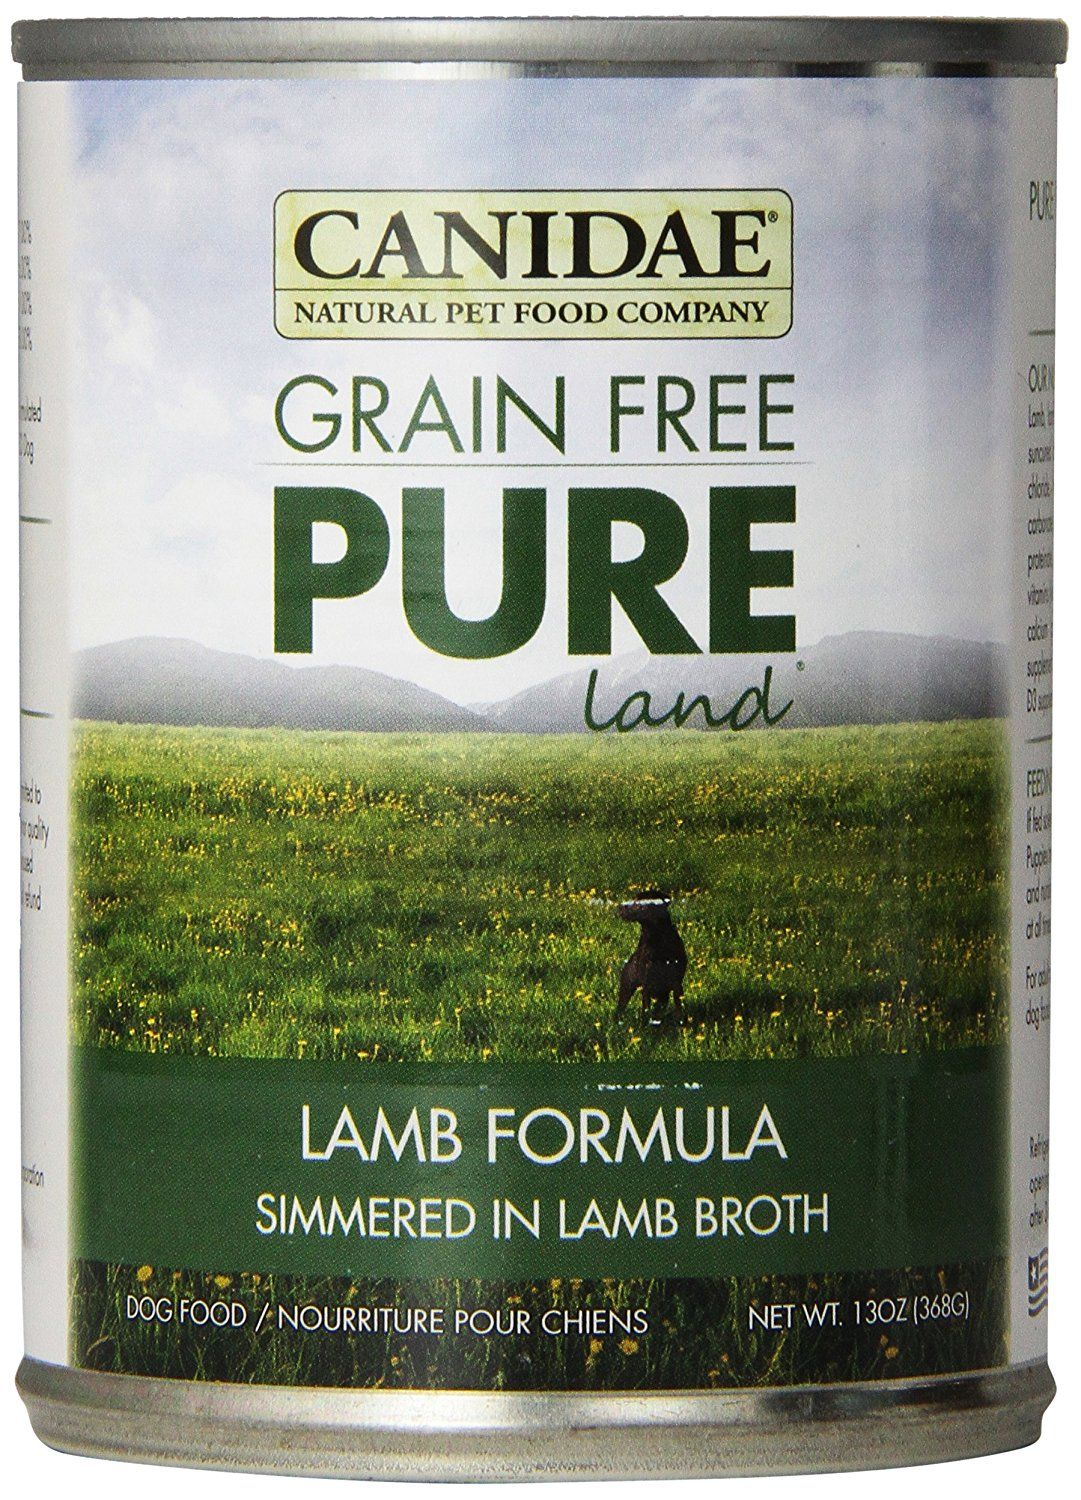 Canidae 404150 12 Pack Grain Free Pure Land Bison Lamb Food For